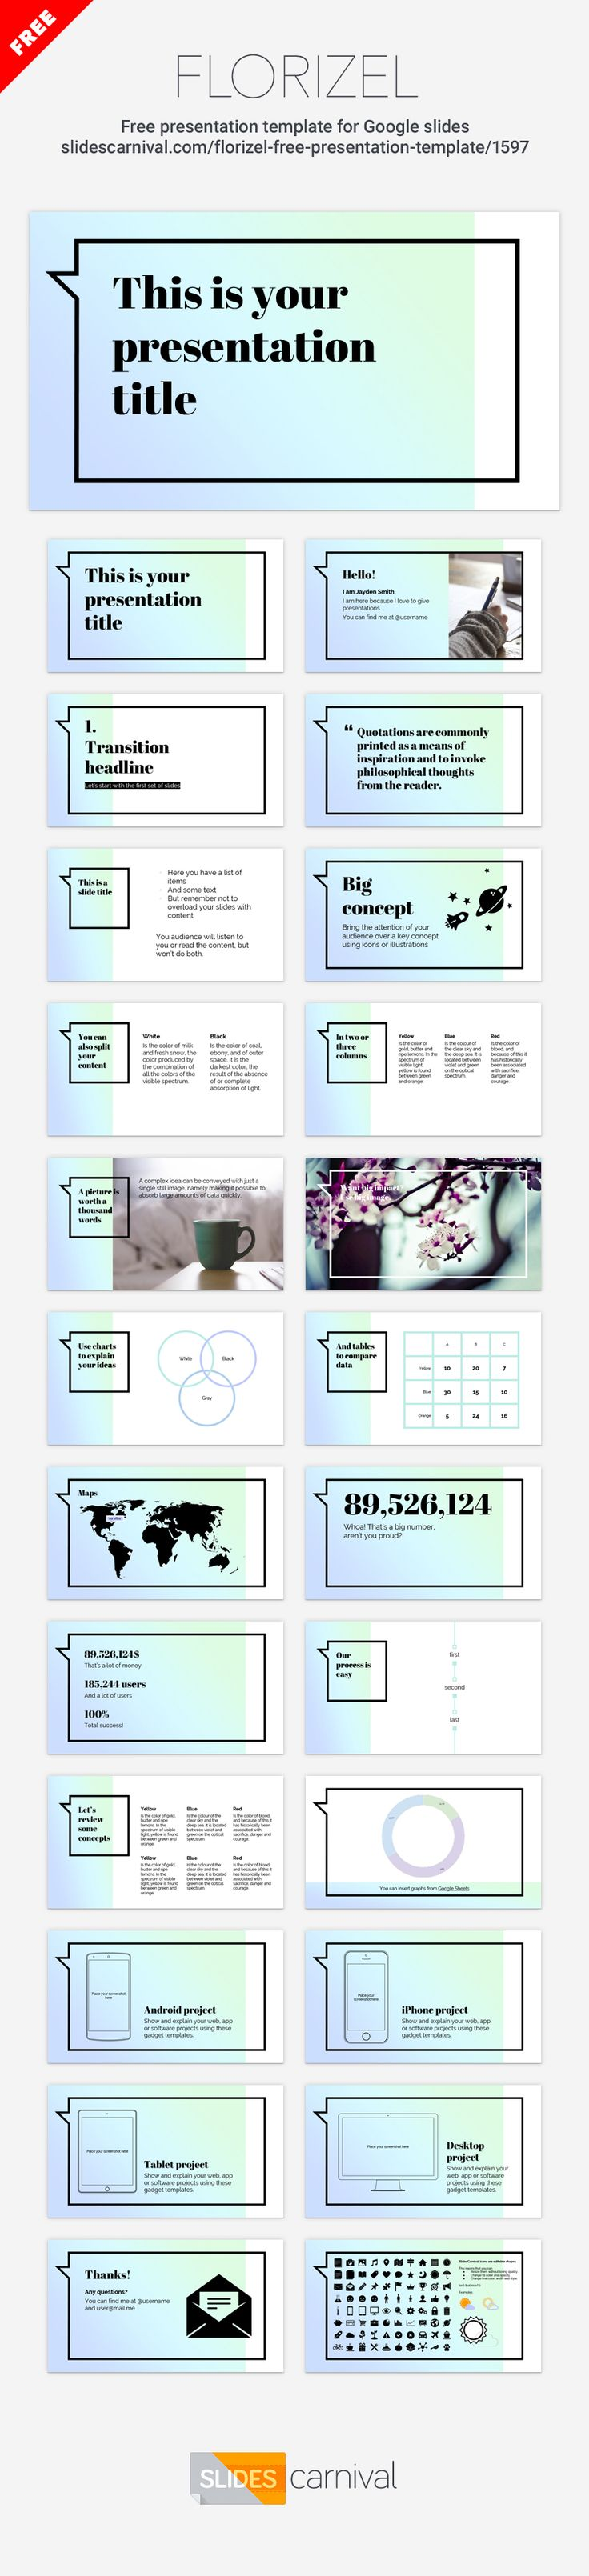 84 best free presentation templates images on pinterest this elegant modern free presentation template will make your content pop and its easy to use fonts and gradient used give a stylish and feminine touch toneelgroepblik Gallery